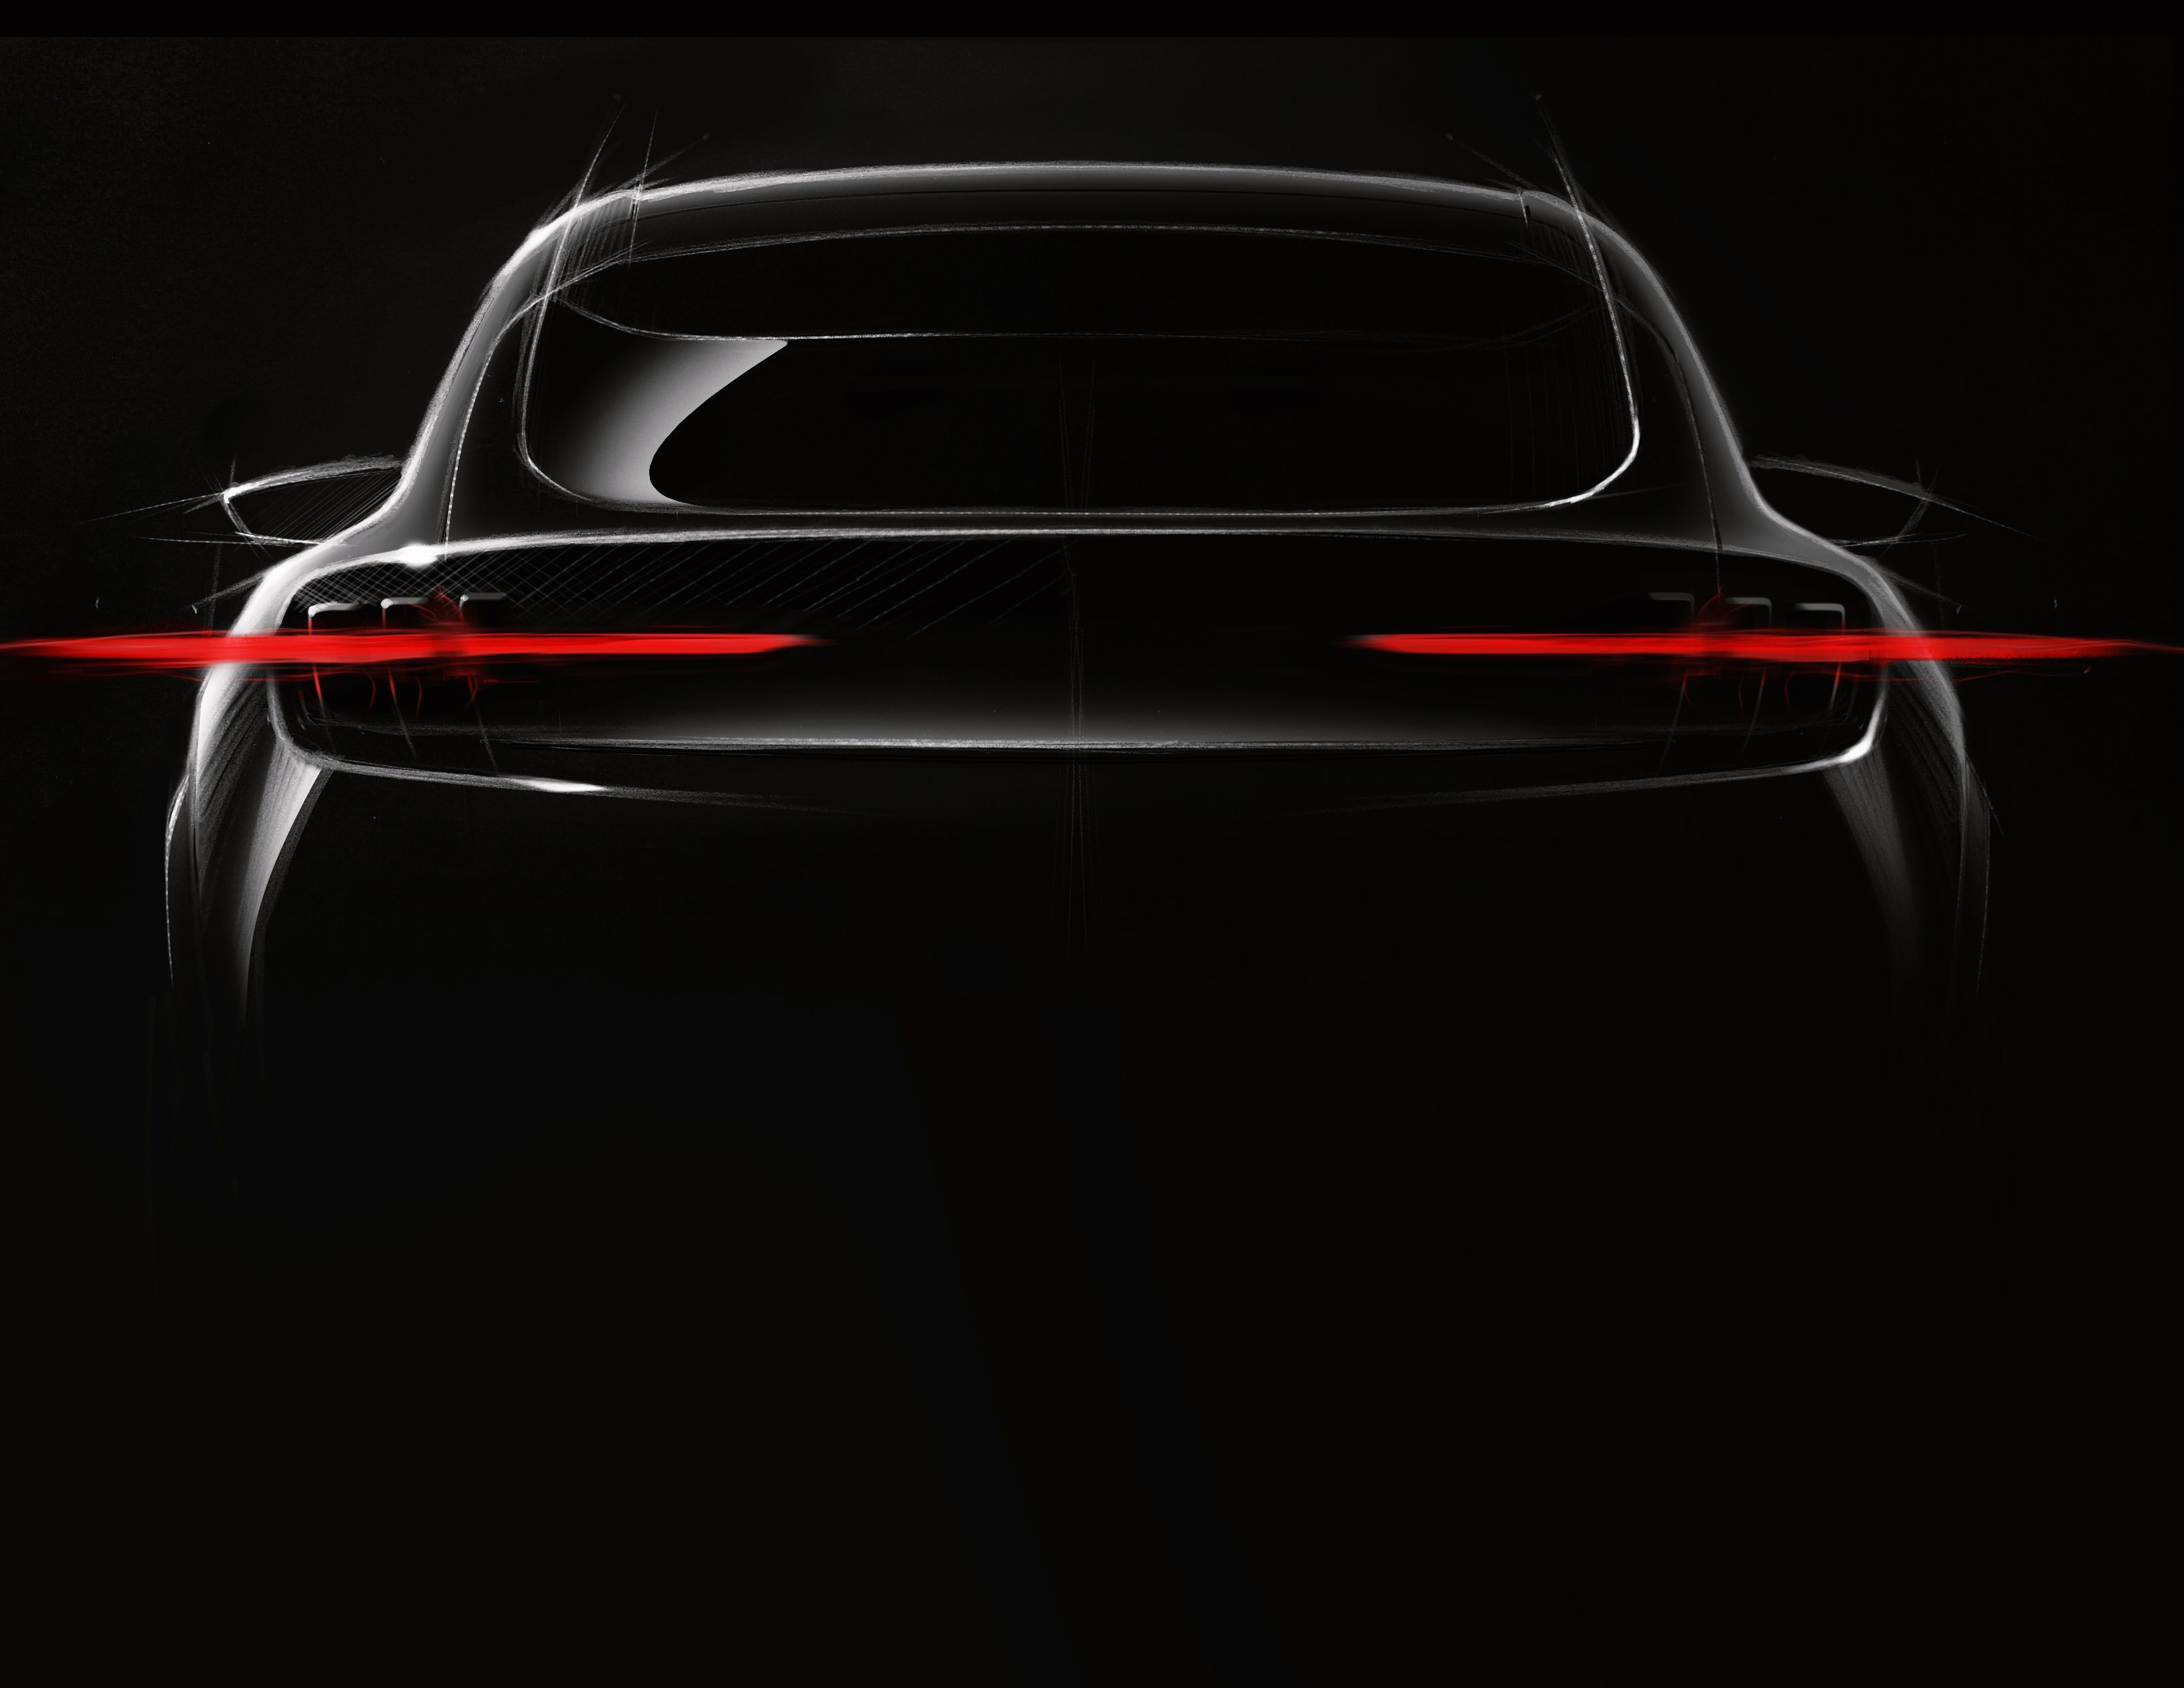 Ford Motor Co.'s Mustang Mach-E SUV, targeting a 300-mile range, is set to launch in 2020.